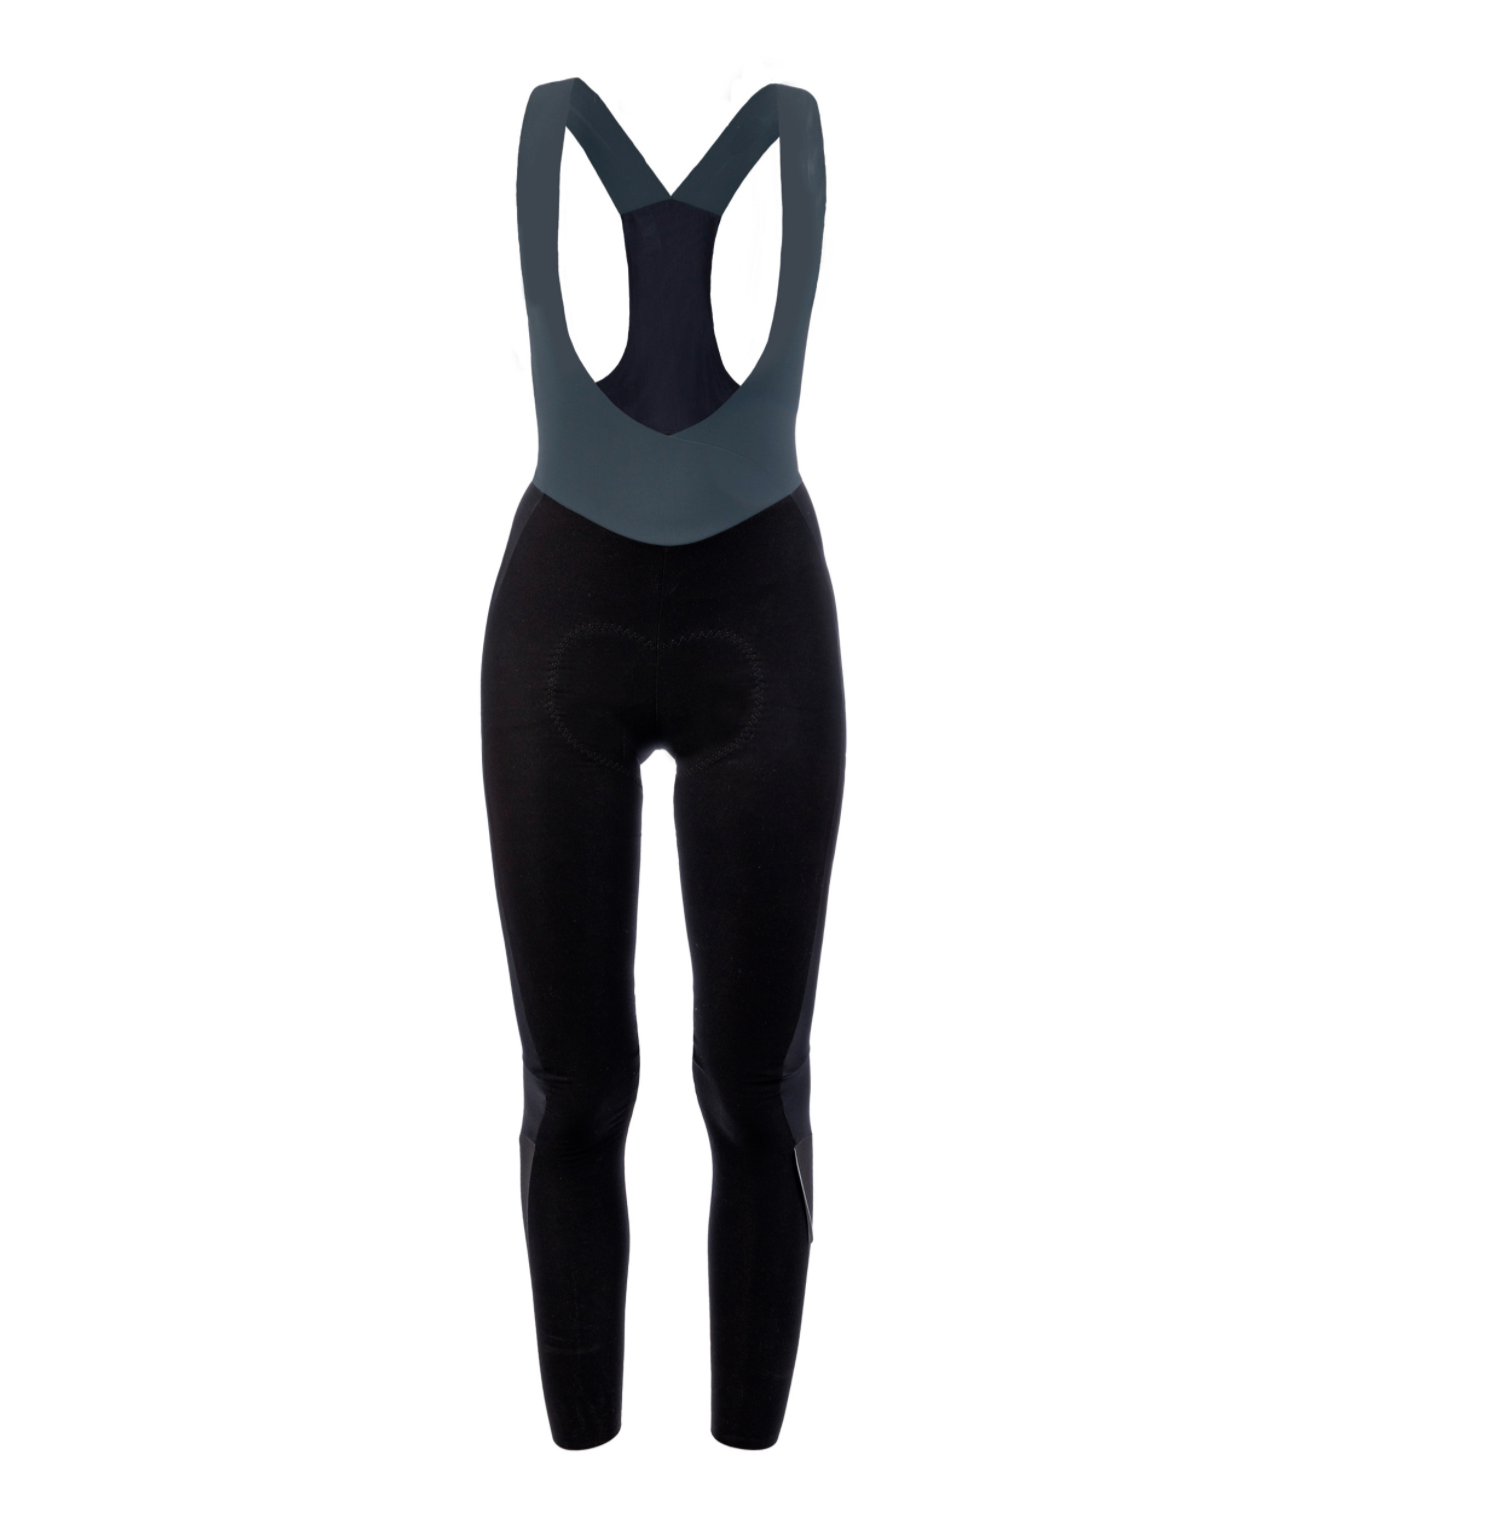 Q36.5 ZERO WINTER WOMENS SALOPETTE BIB SHORT